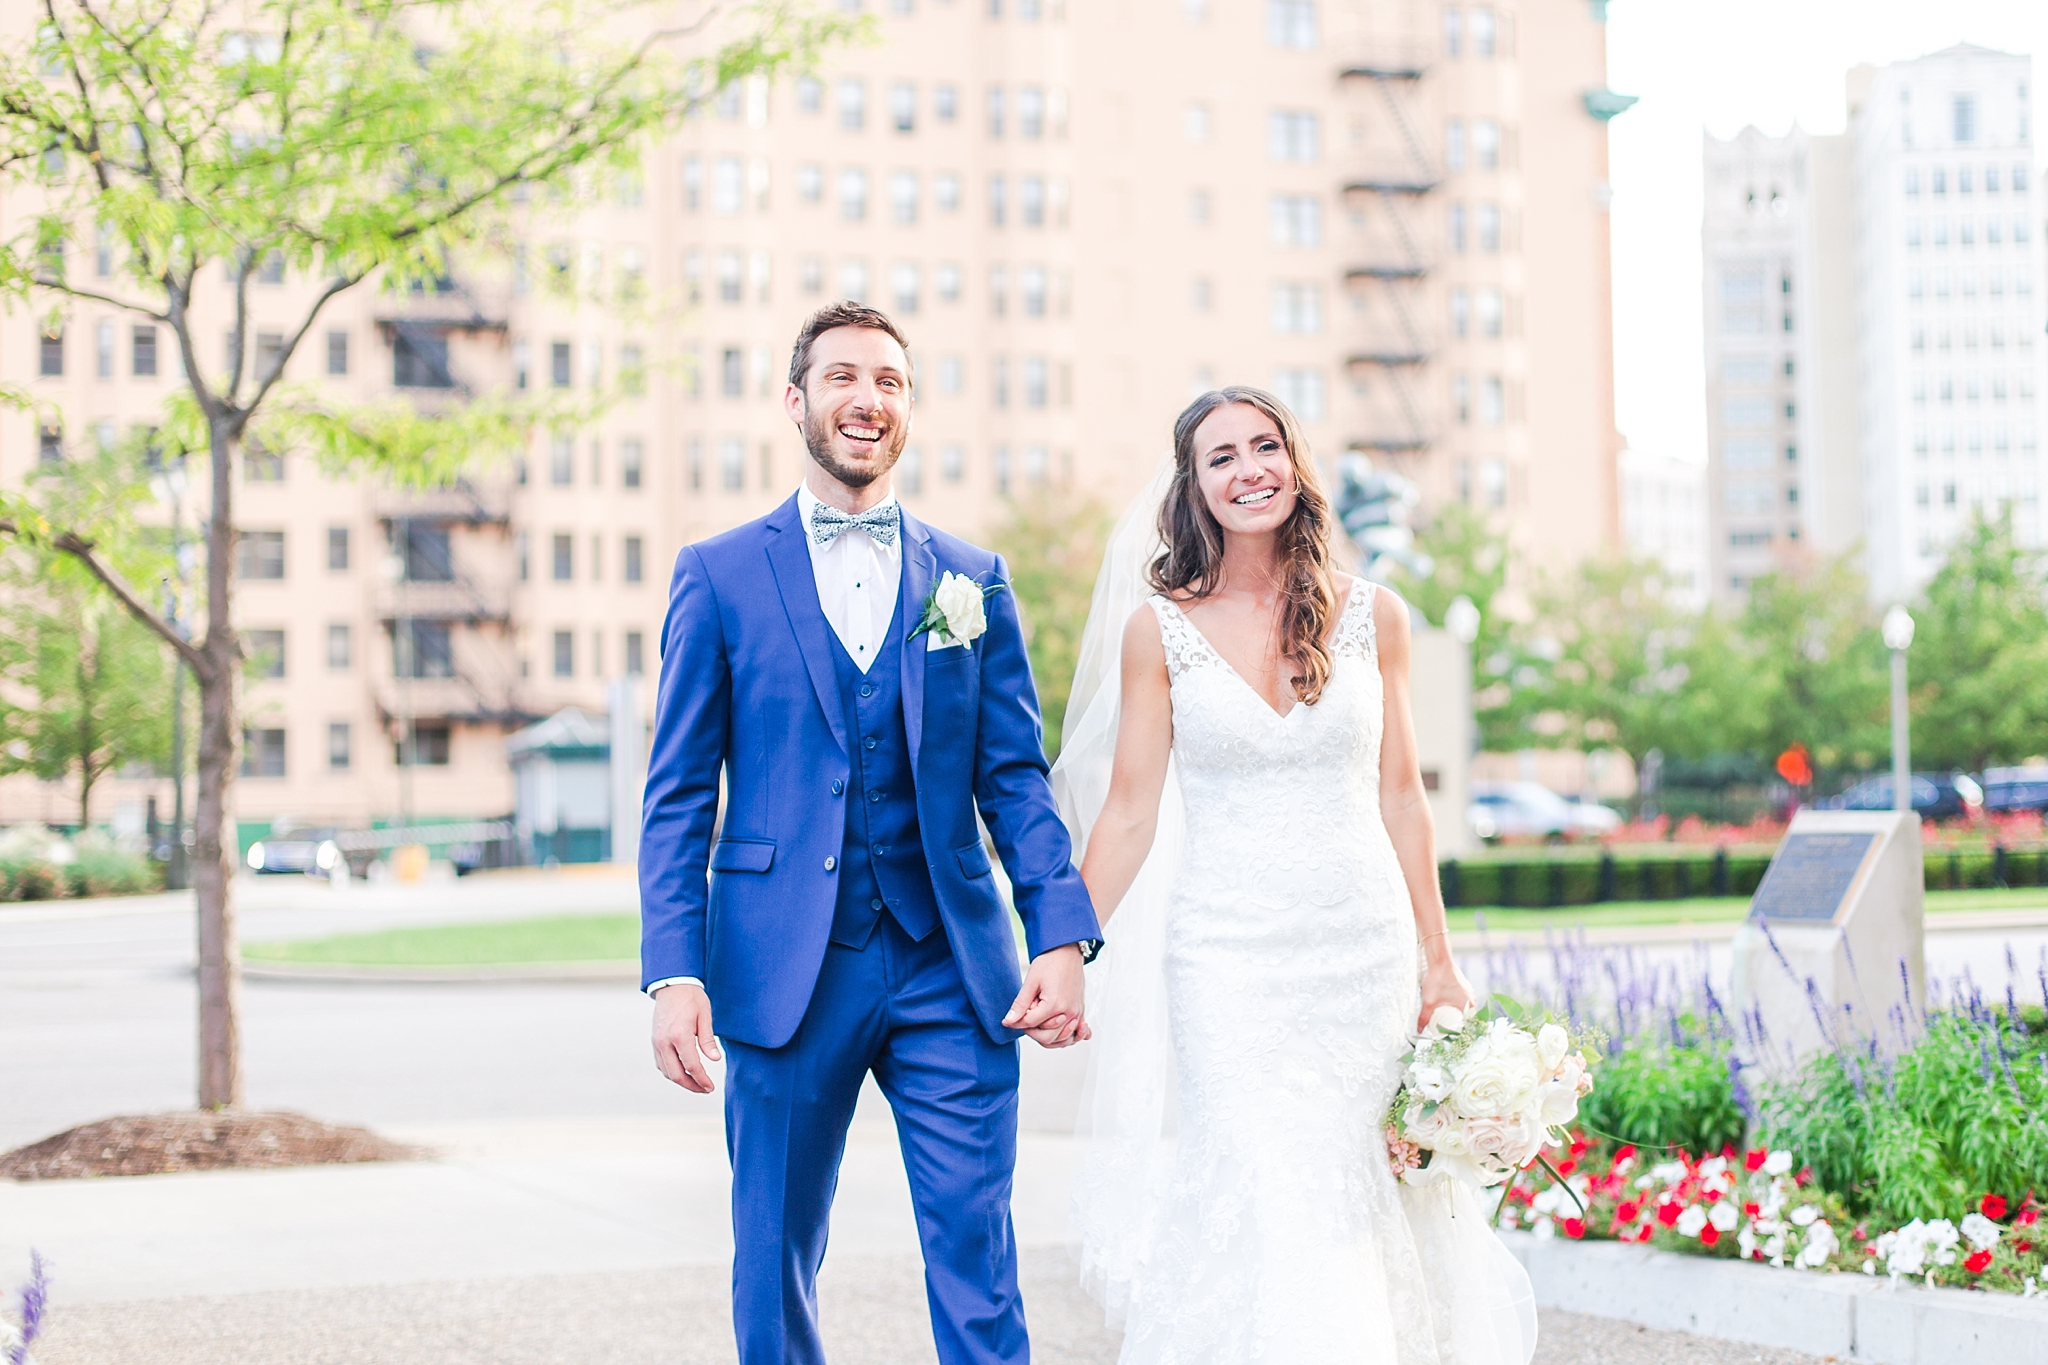 playful-blush-navy-wedding-photos-the-detroit-athletic-club-in-detroit-michigan-by-courtney-carolyn-photography_0057.jpg